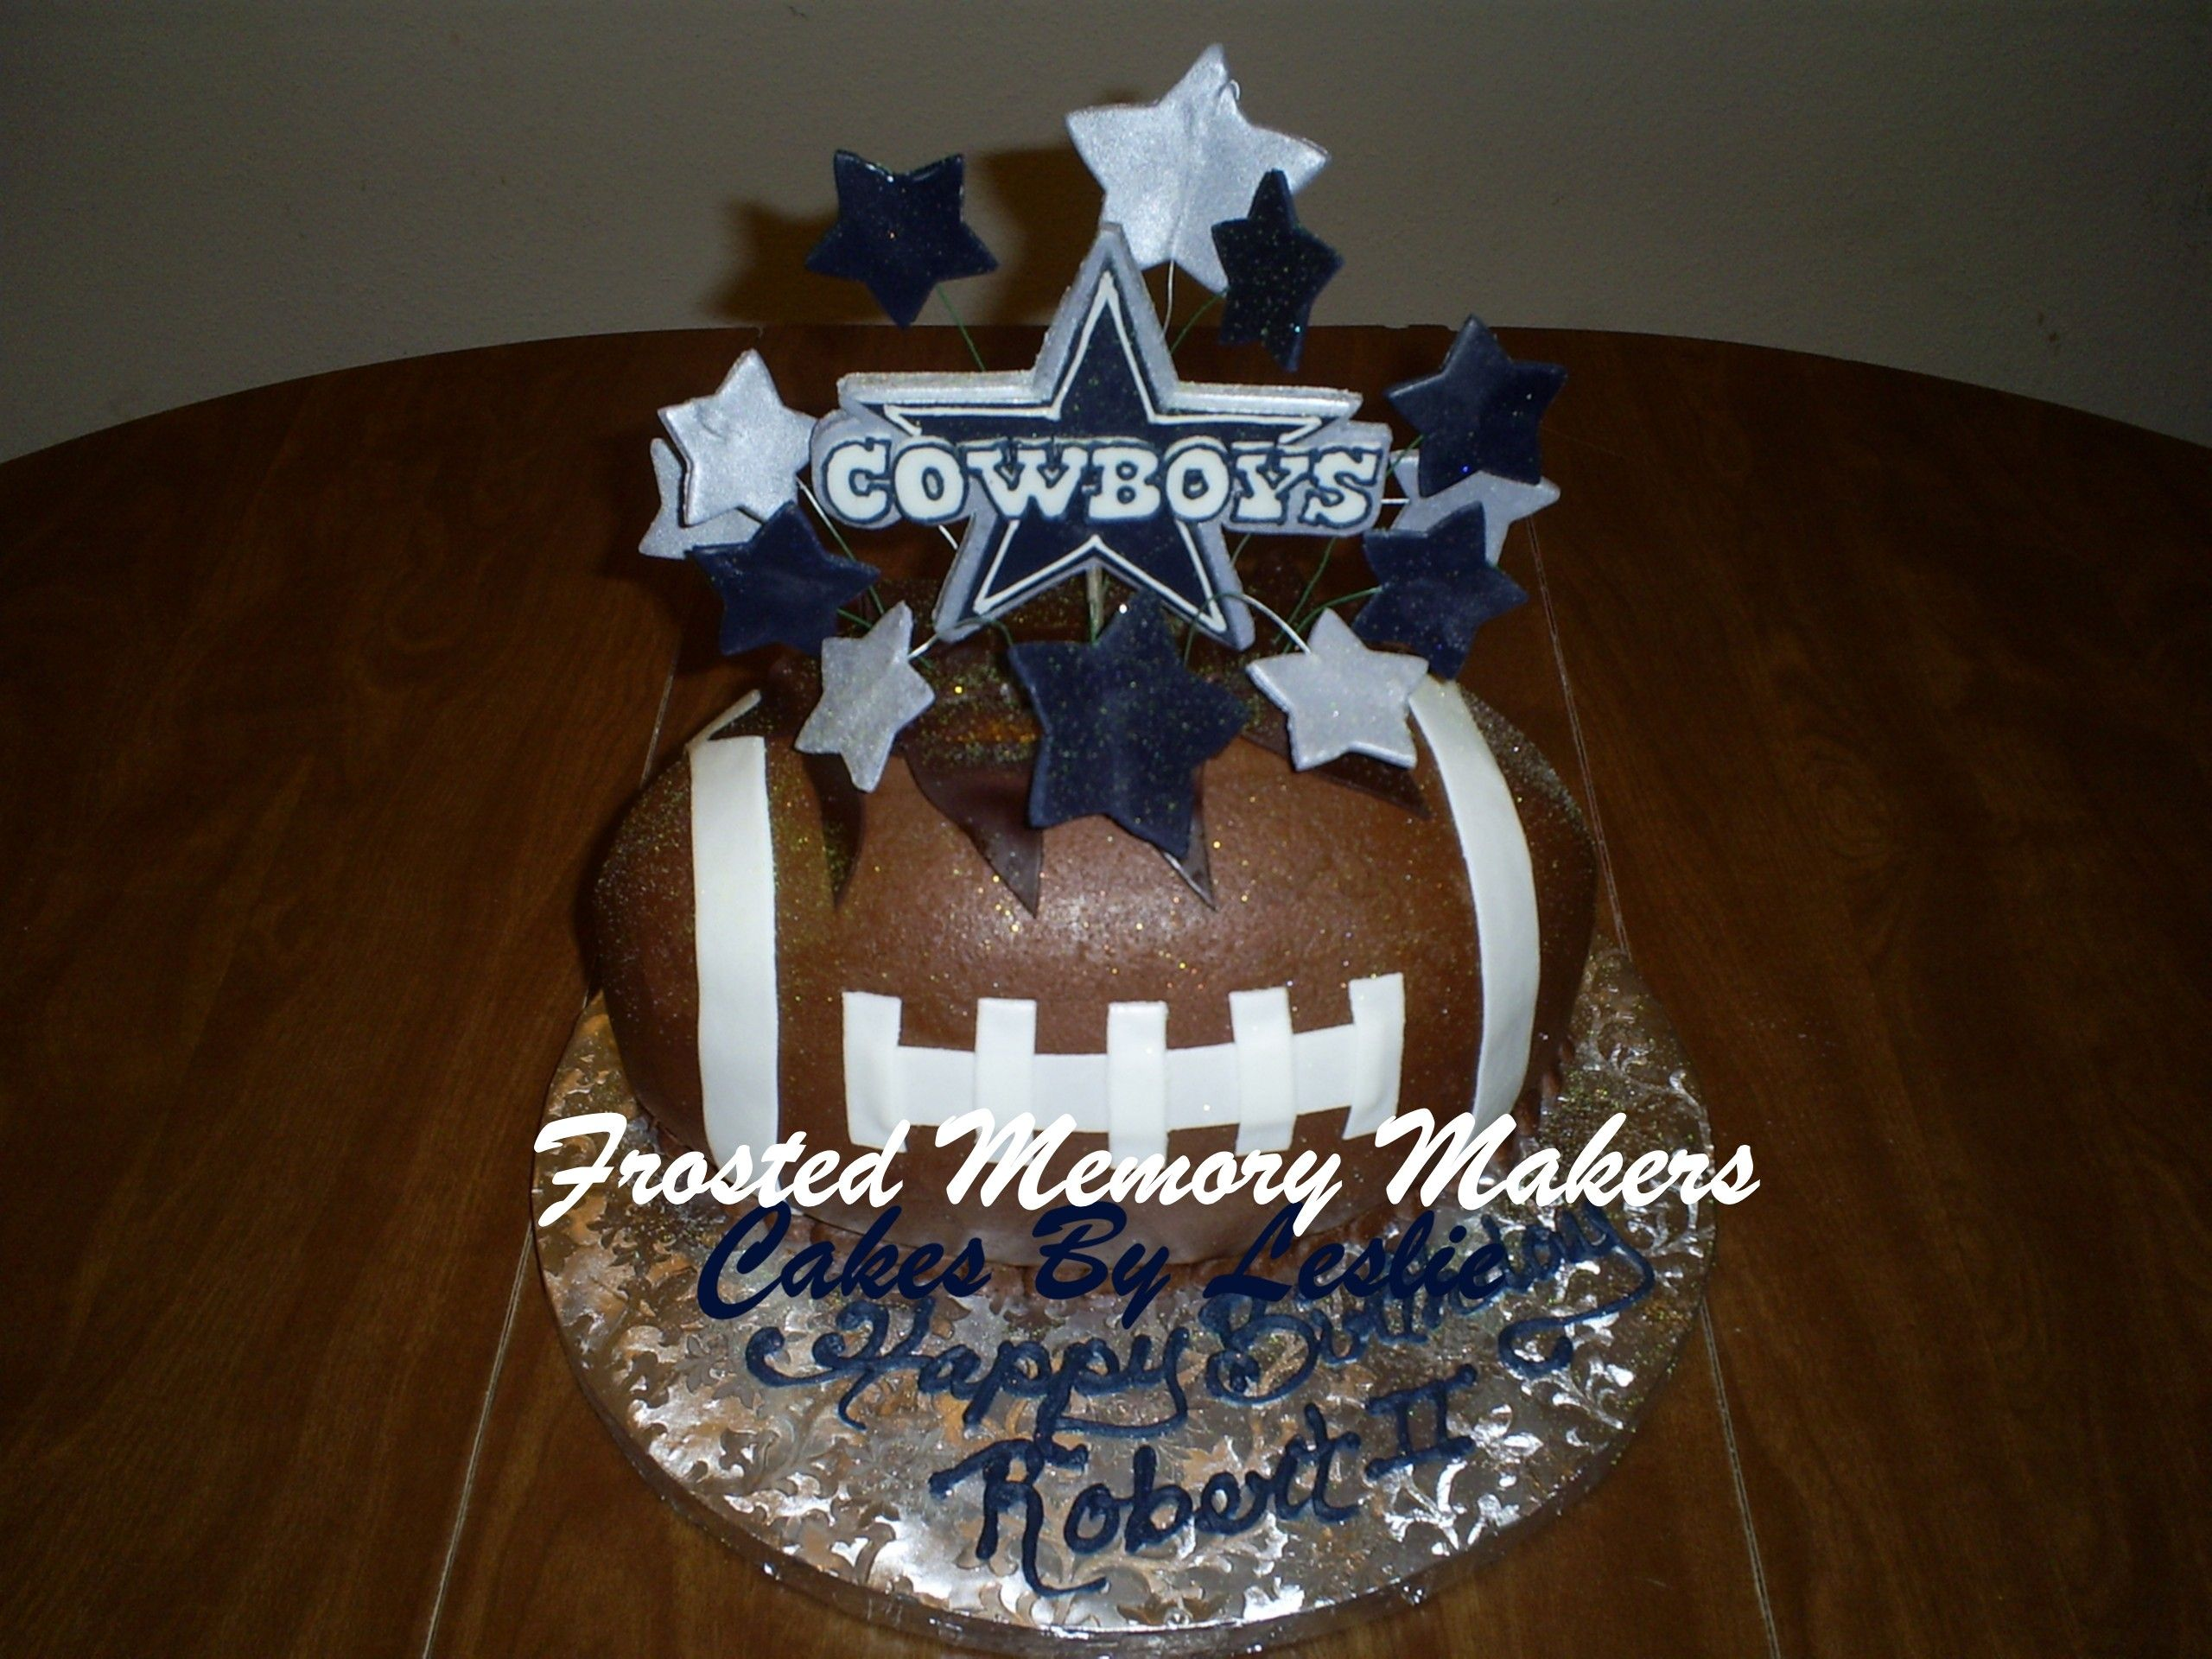 Dallas cowboys birthday cake ideas and designs - Cowboys Football Cake Michael Ouren This Is What I Want For My Bday